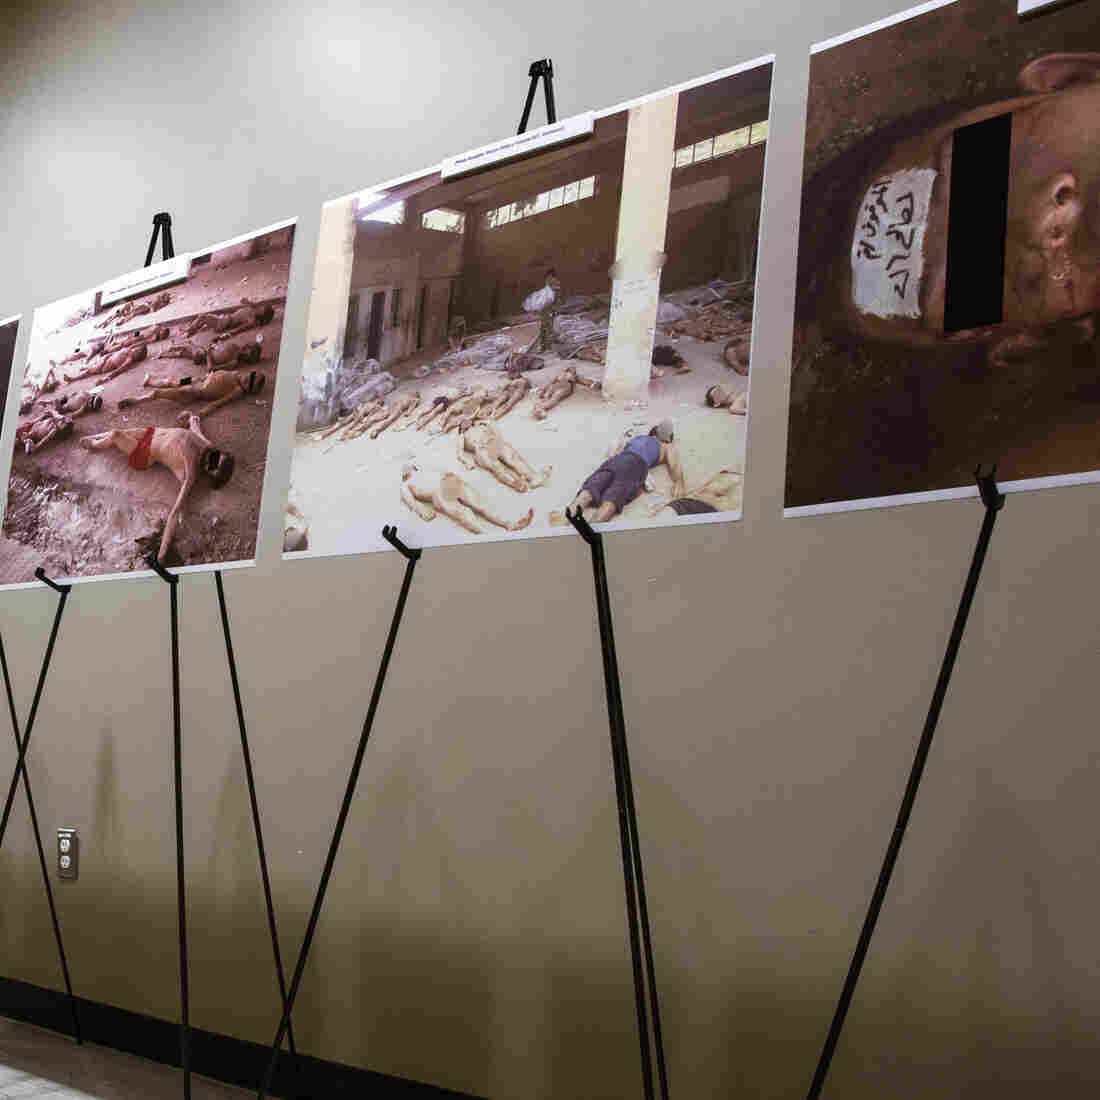 Images of dead bodies in Syrian prisons, taken by a Syrian forensic photographer, were displayed at the United Nations earlier this year. They were also put on exhibit at the U.S. Capitol in July.